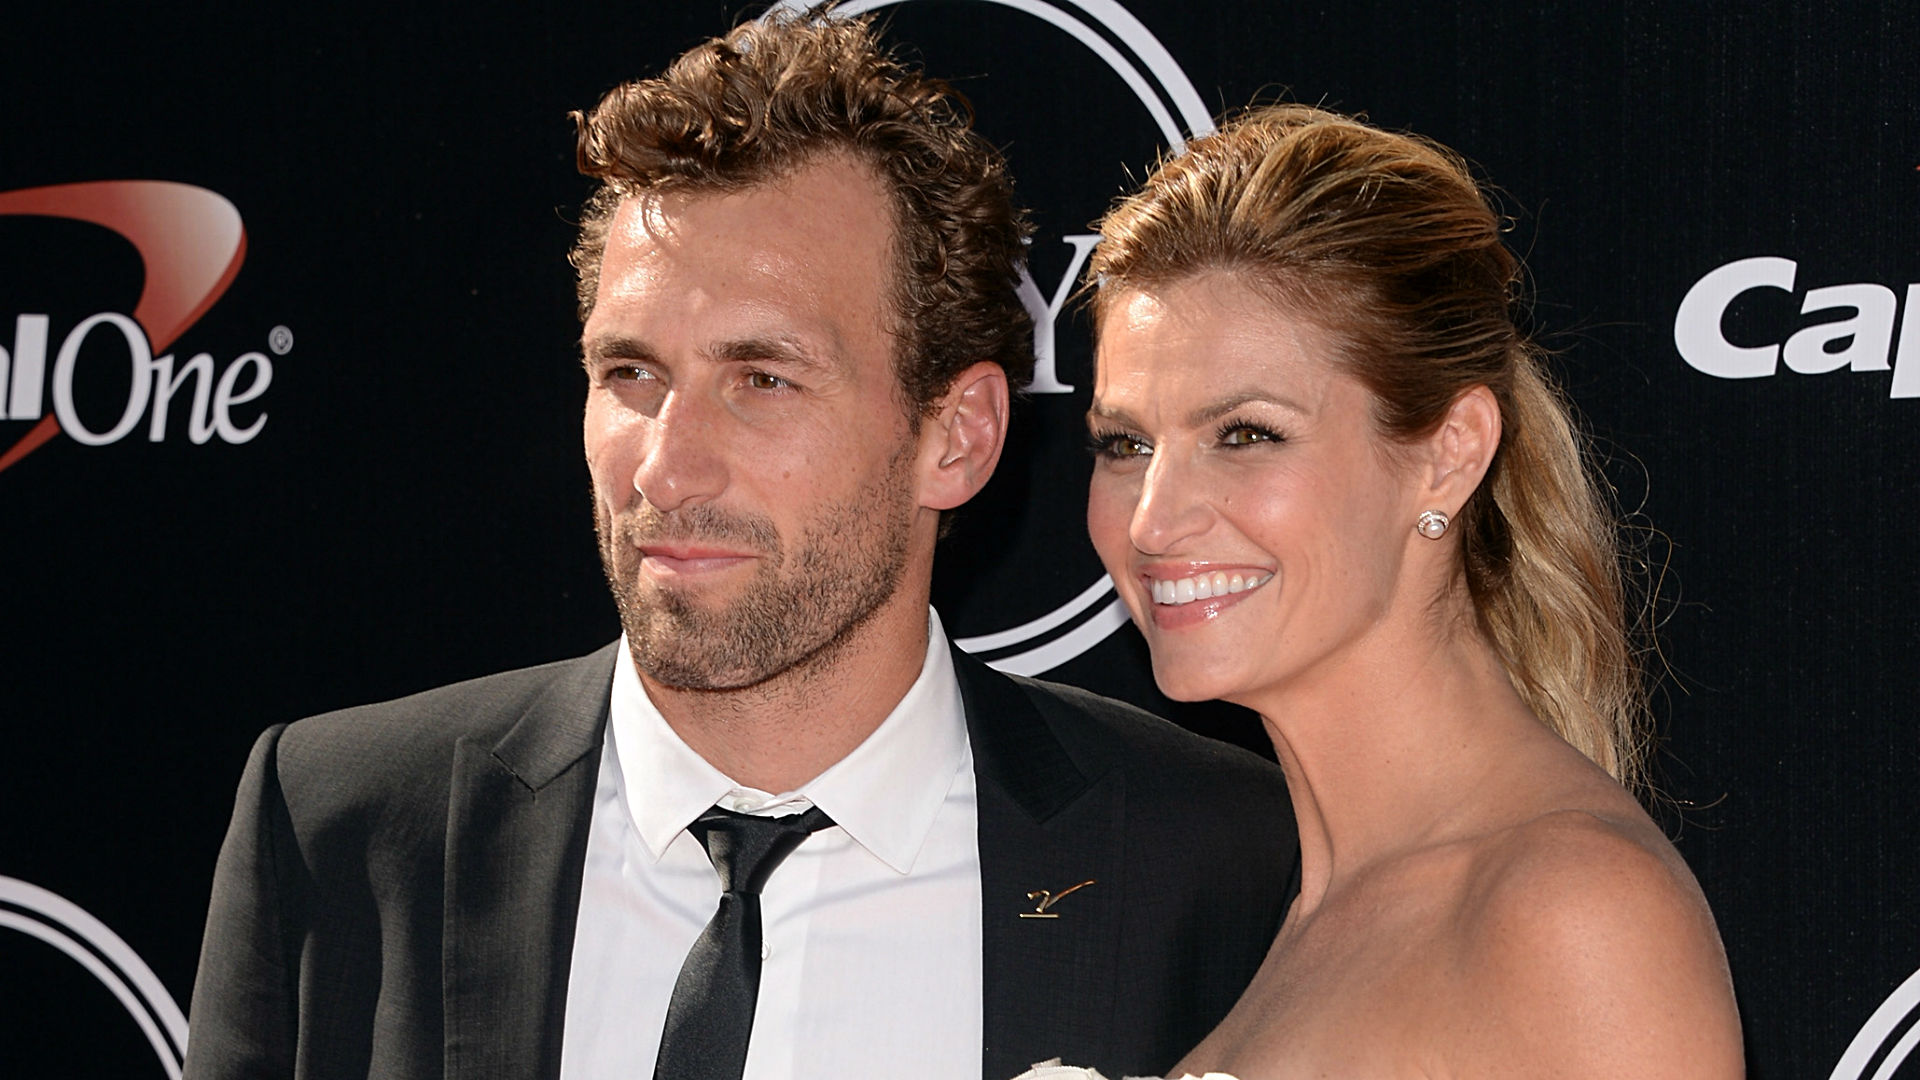 Reports: Erin Andrews' boyfriend, Kings' Jarret Stoll, arrested, charged with cocaine possession